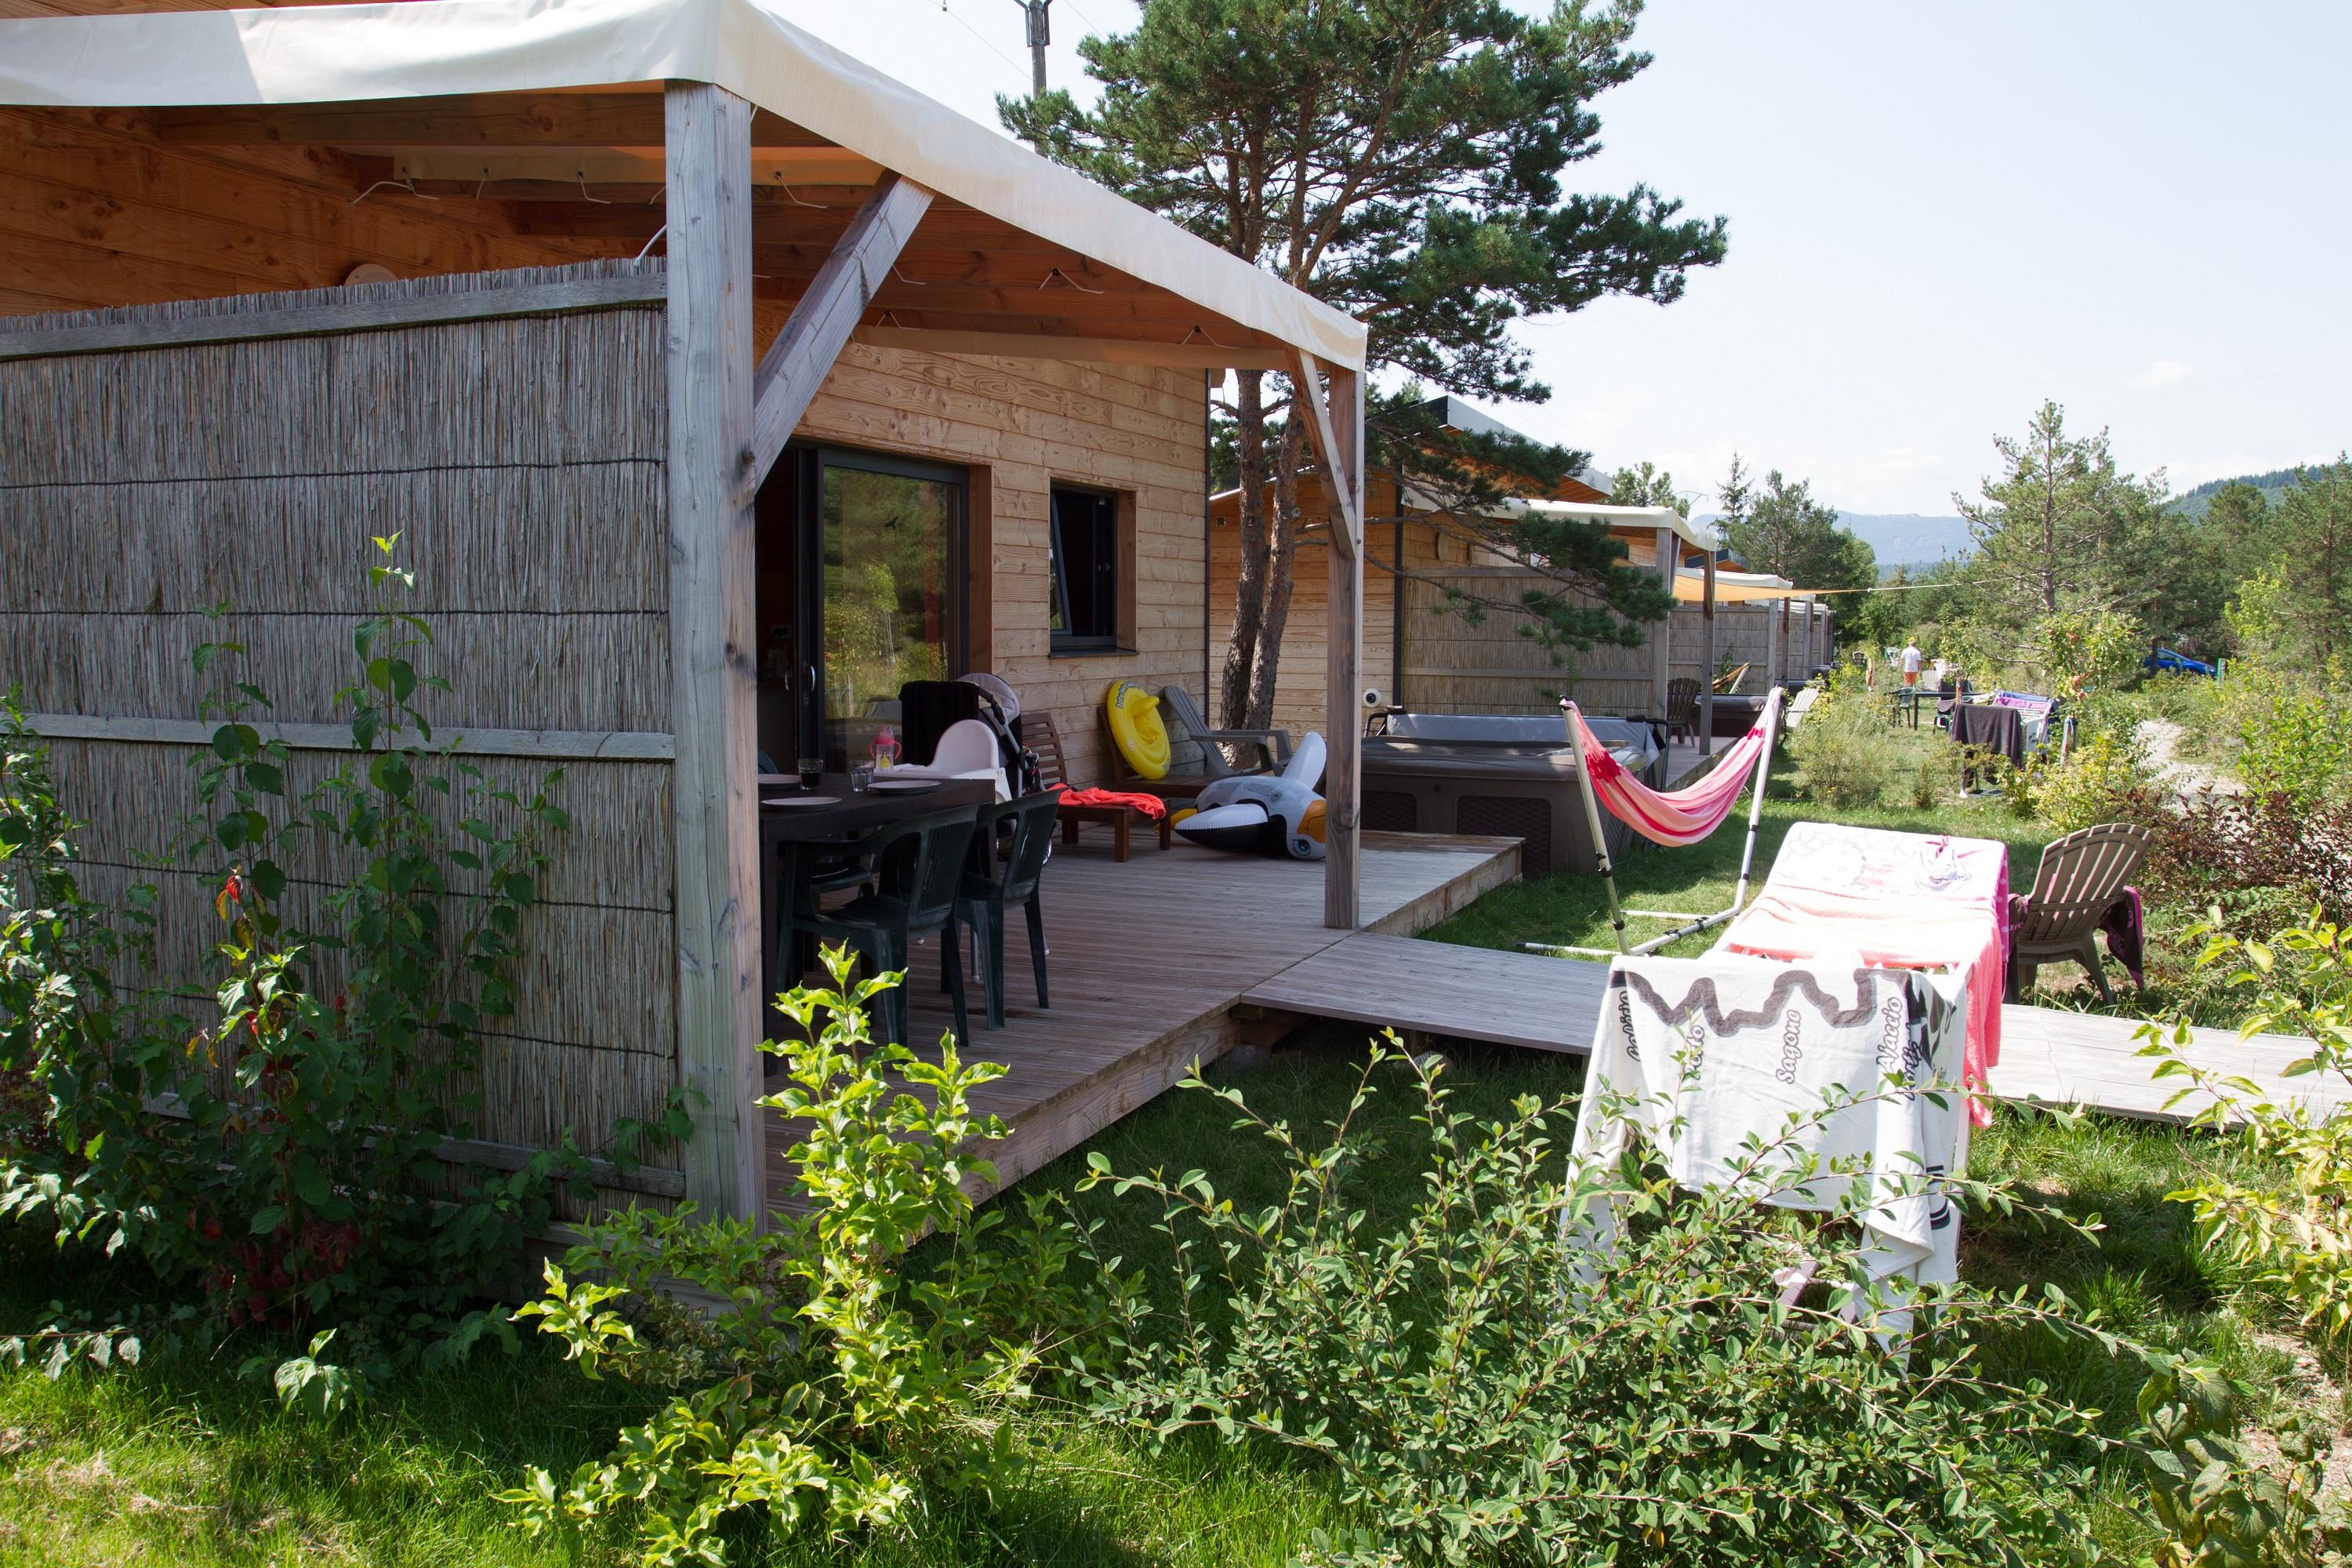 Location - Chalet Luxe: 2 Chambres, 2 Sdb + Wc, Cuisine. Jacuzzi, Barbecue - Camping Les Rives du Lac